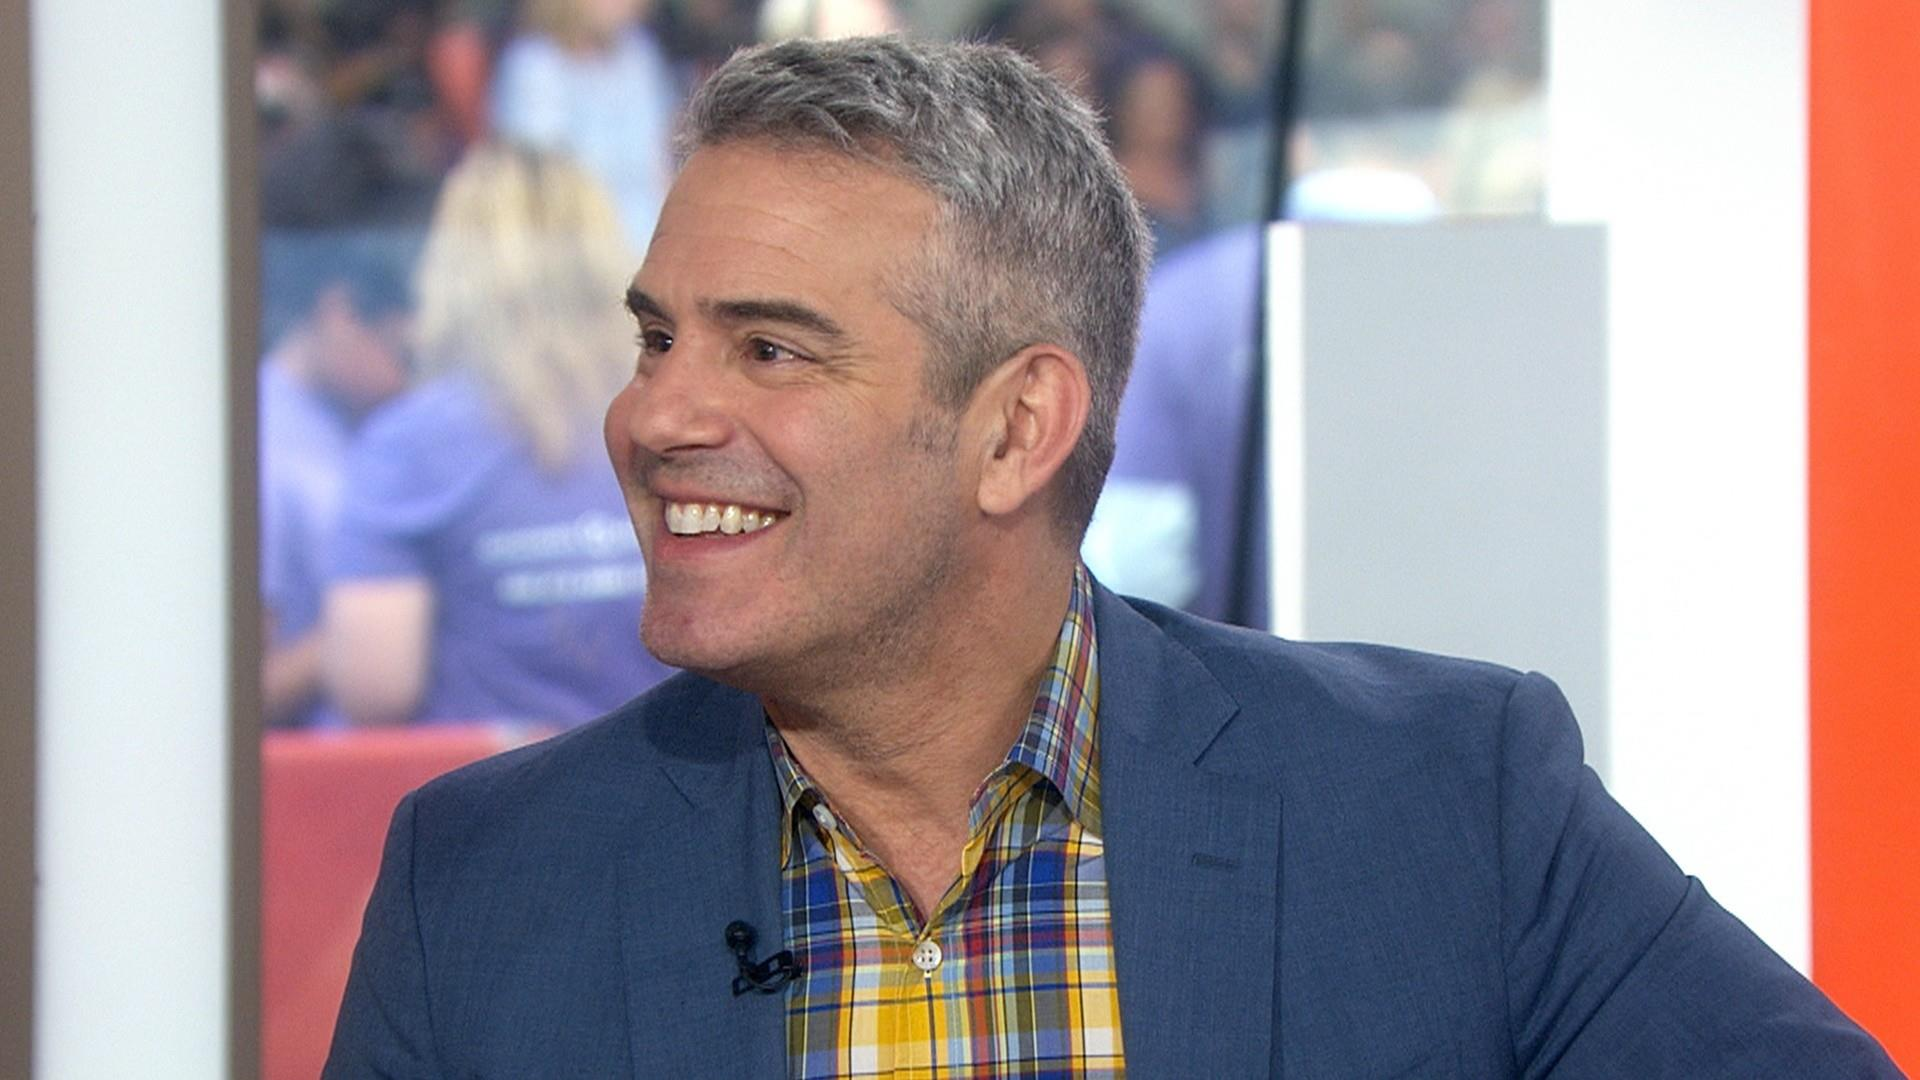 Andy Cohen dishes on celebrating 10 years of 'WWHL'